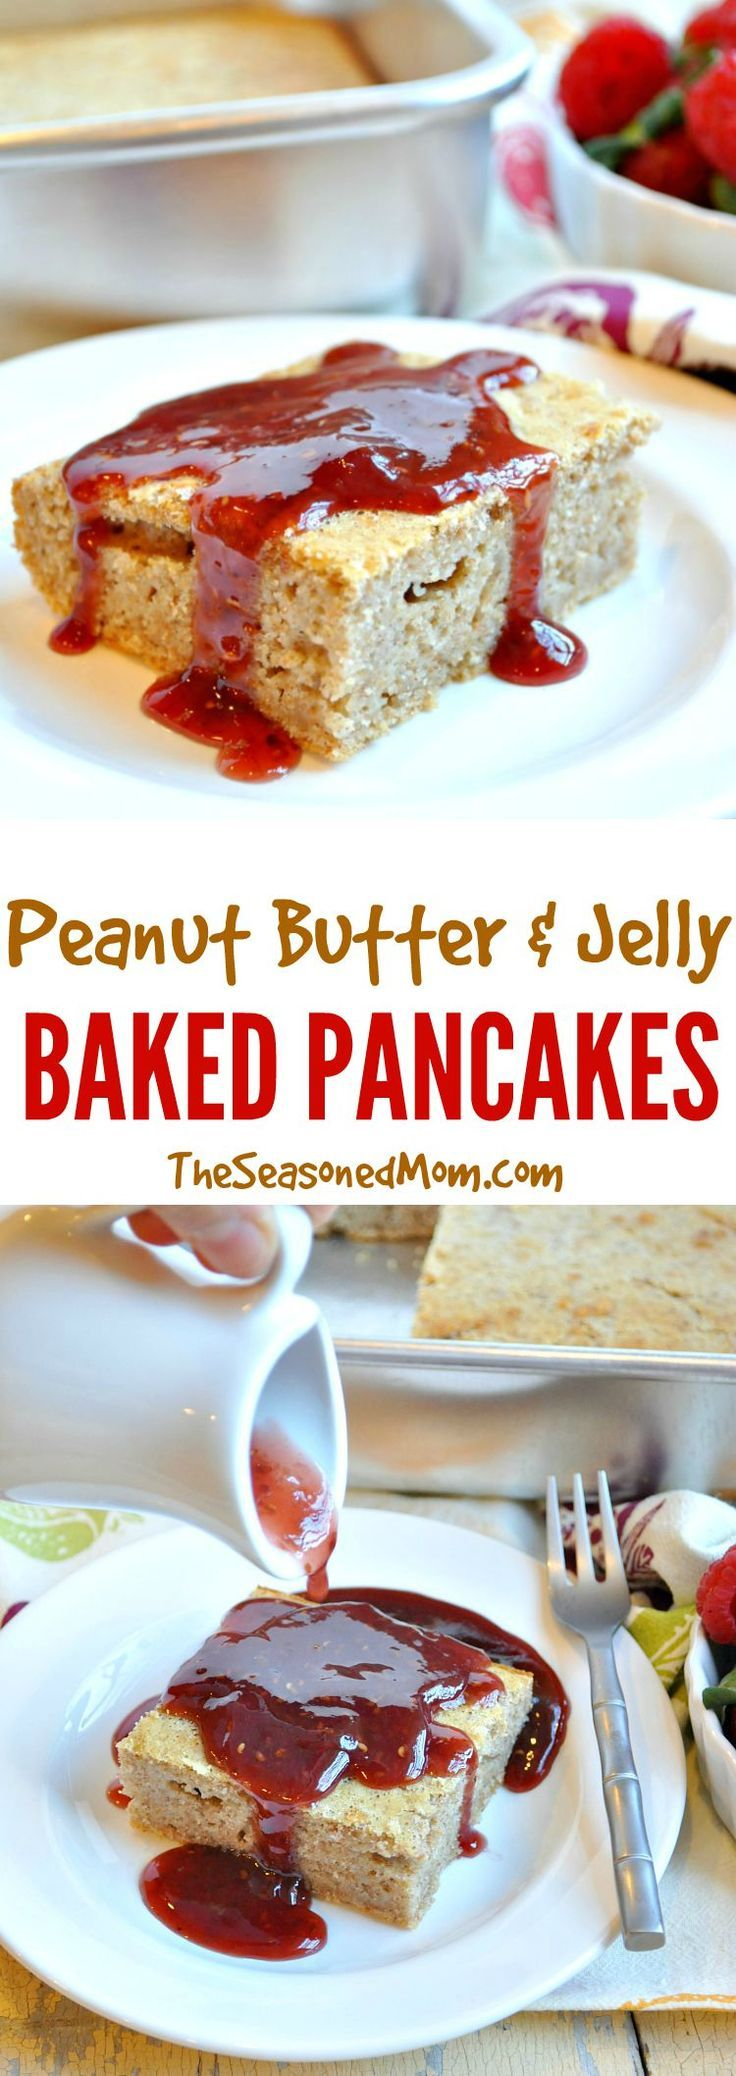 Peanut butter and jelly baked pancakes recipe baked pancakes peanut butter and jelly baked pancakes ccuart Choice Image